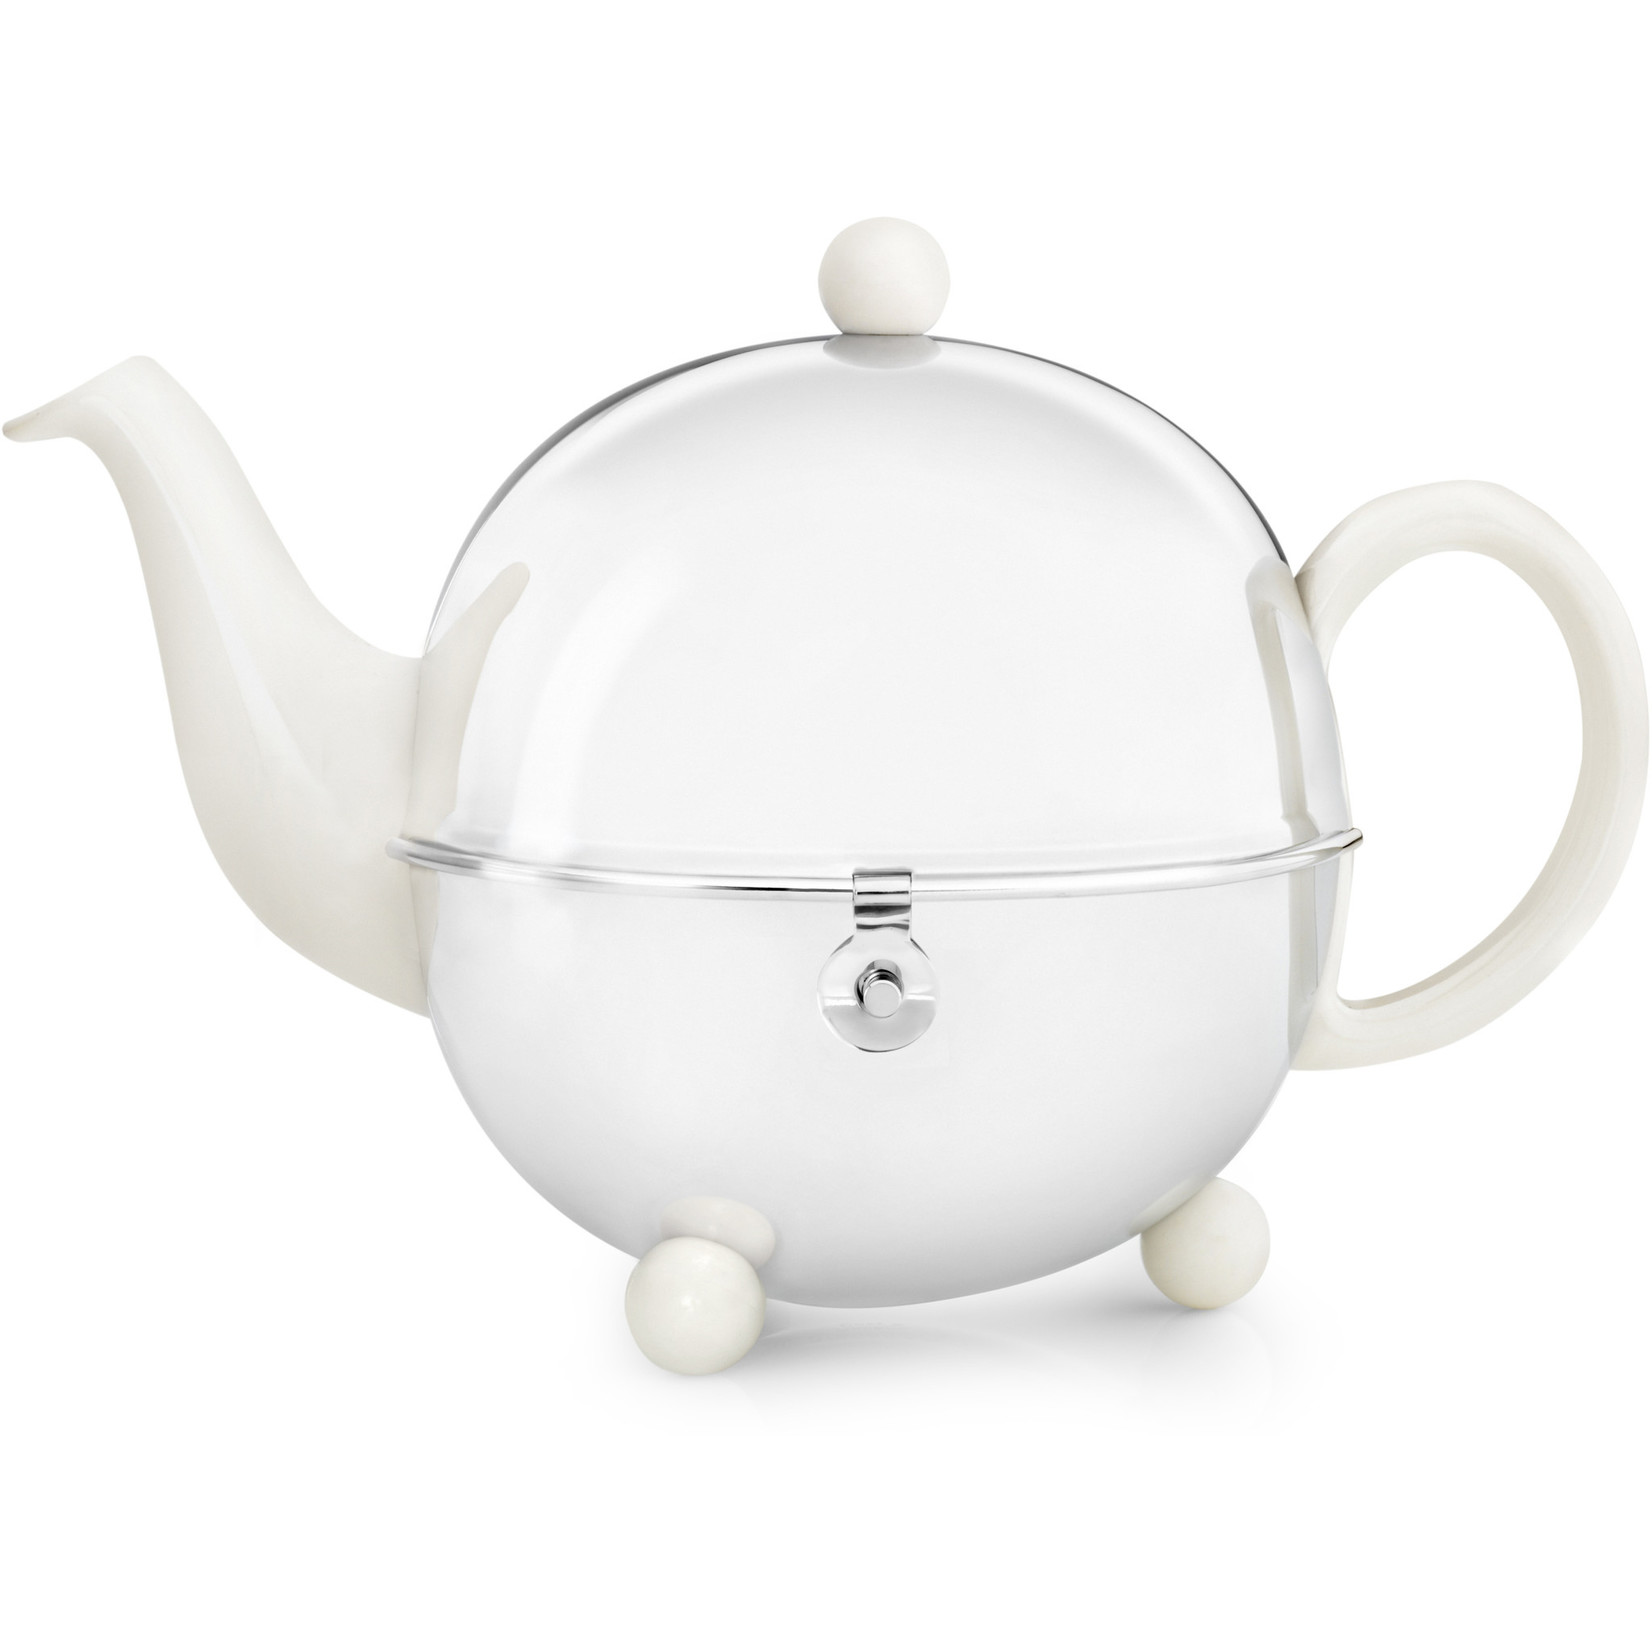 Bredemeijer Bredemeijer Cosy Theepot crème-wit 1,3 ltr